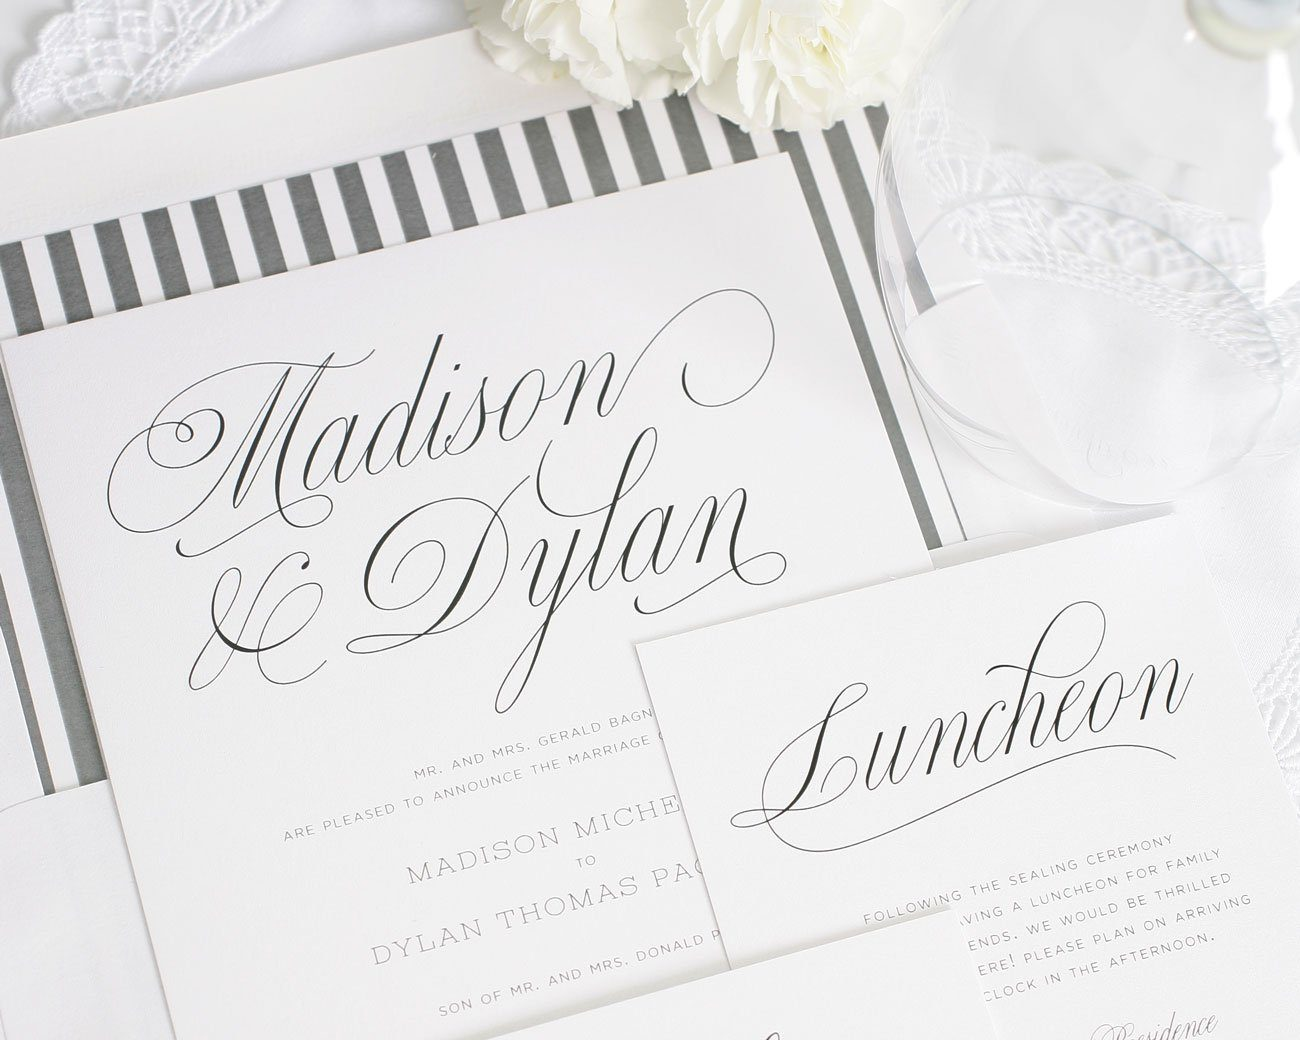 Script wedding invitations in gray